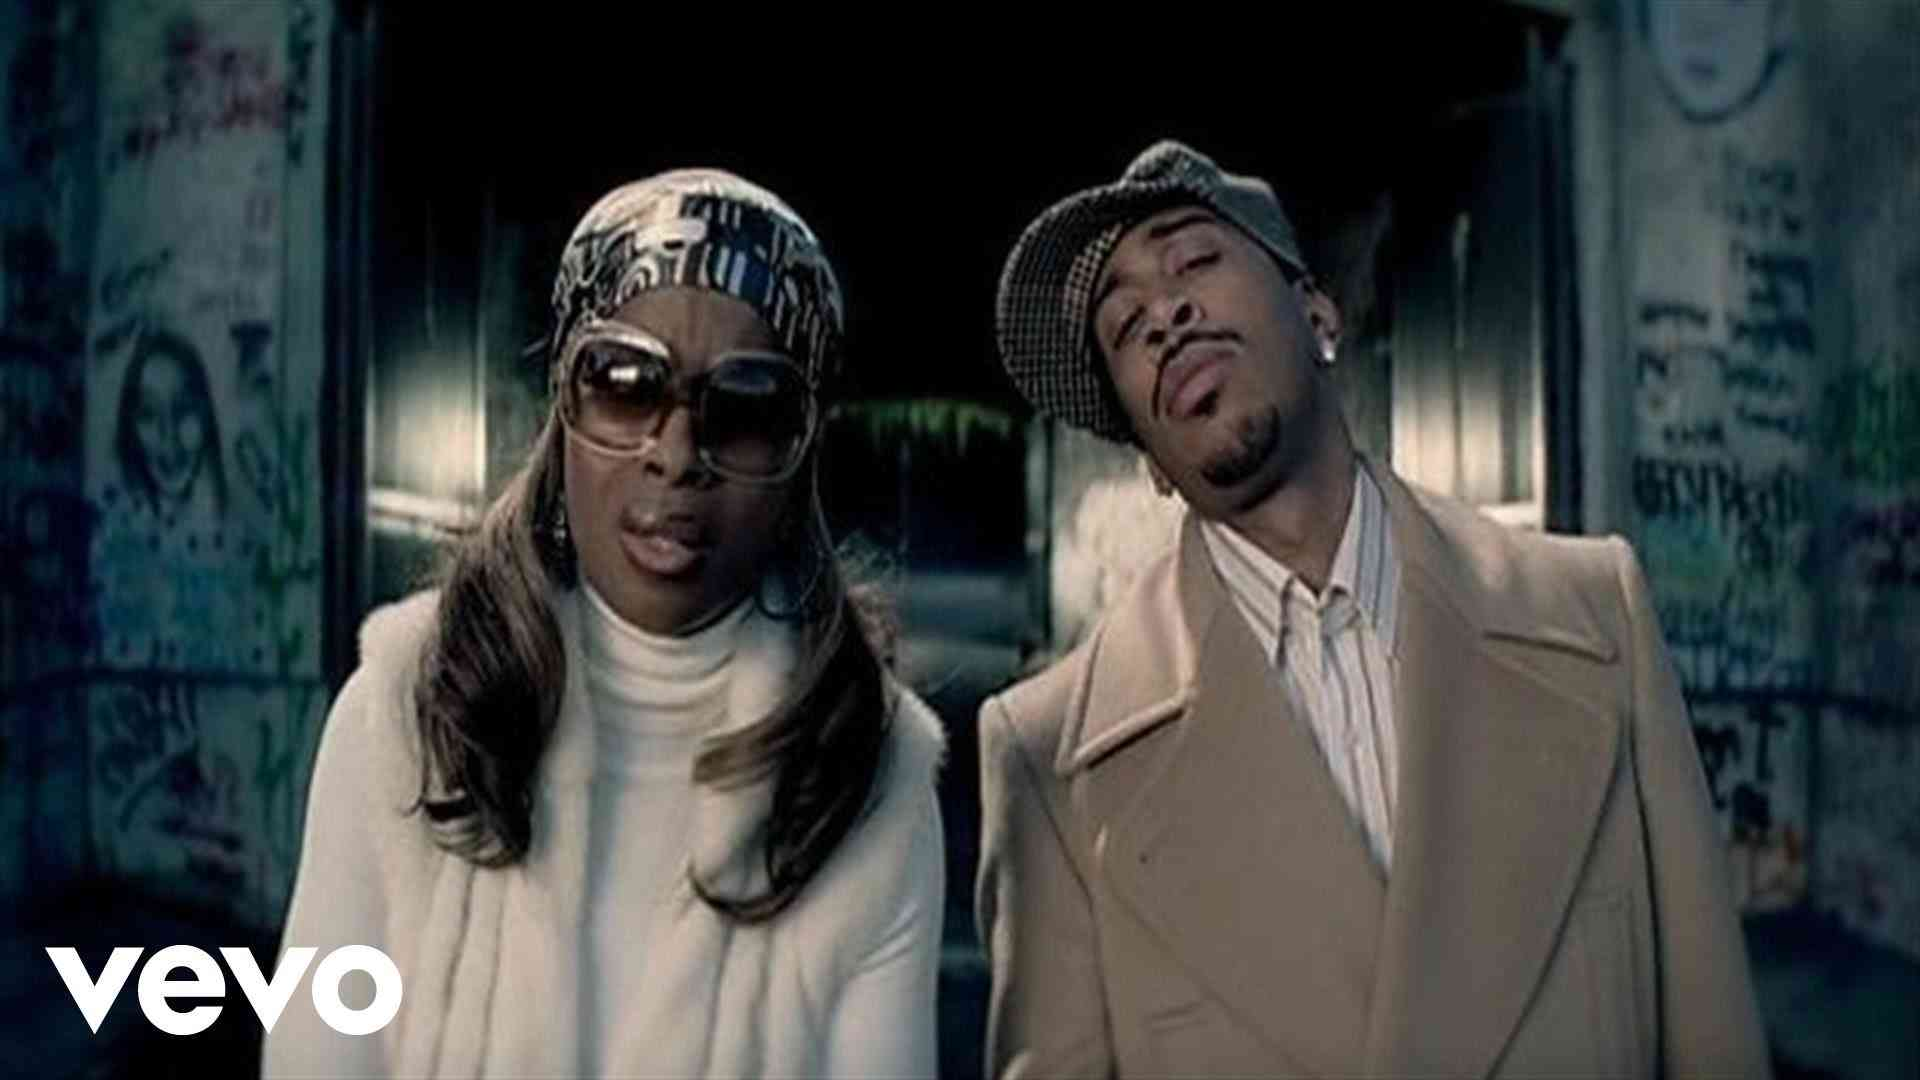 Ludacris - Runaway Love ft. Mary J. Blige - YouTube